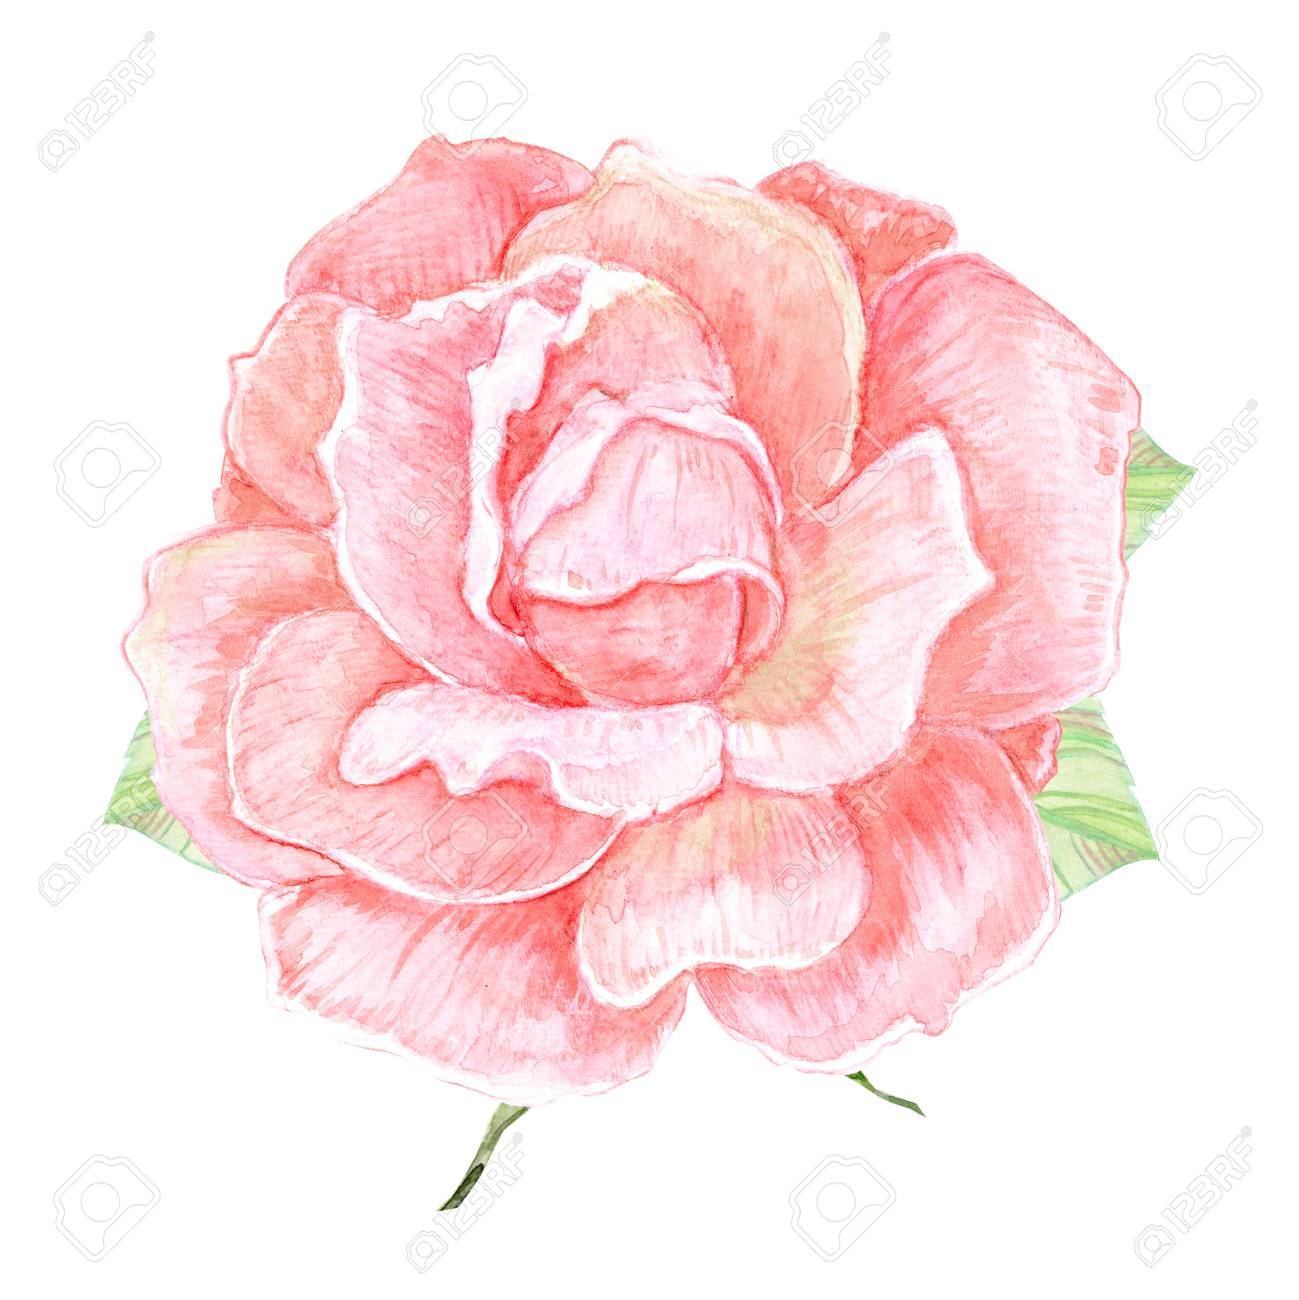 cute rose flower on white background. watercolor painting Stock Photo - 65325517